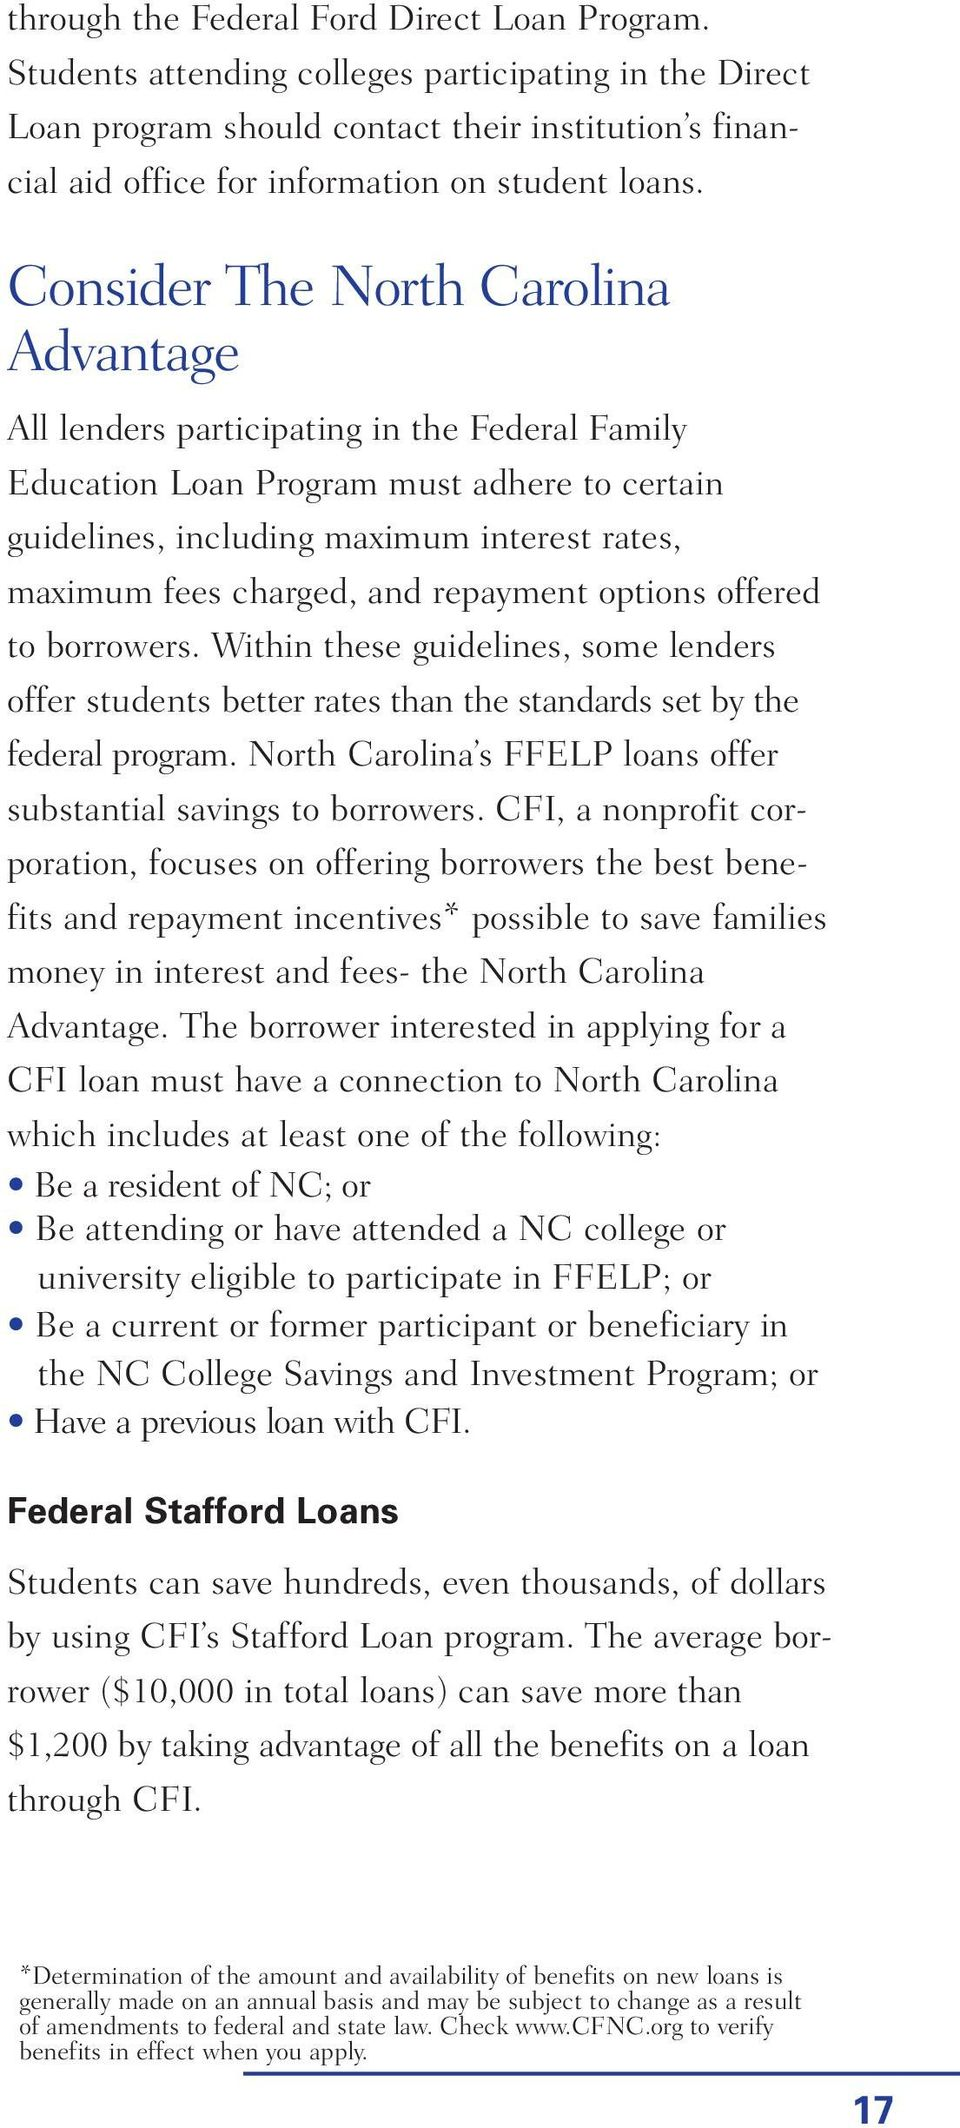 Consider The North Carolina Advantage All lenders participating in the Federal Family Education Loan Program must adhere to certain guidelines, including maximum interest rates, maximum fees charged,